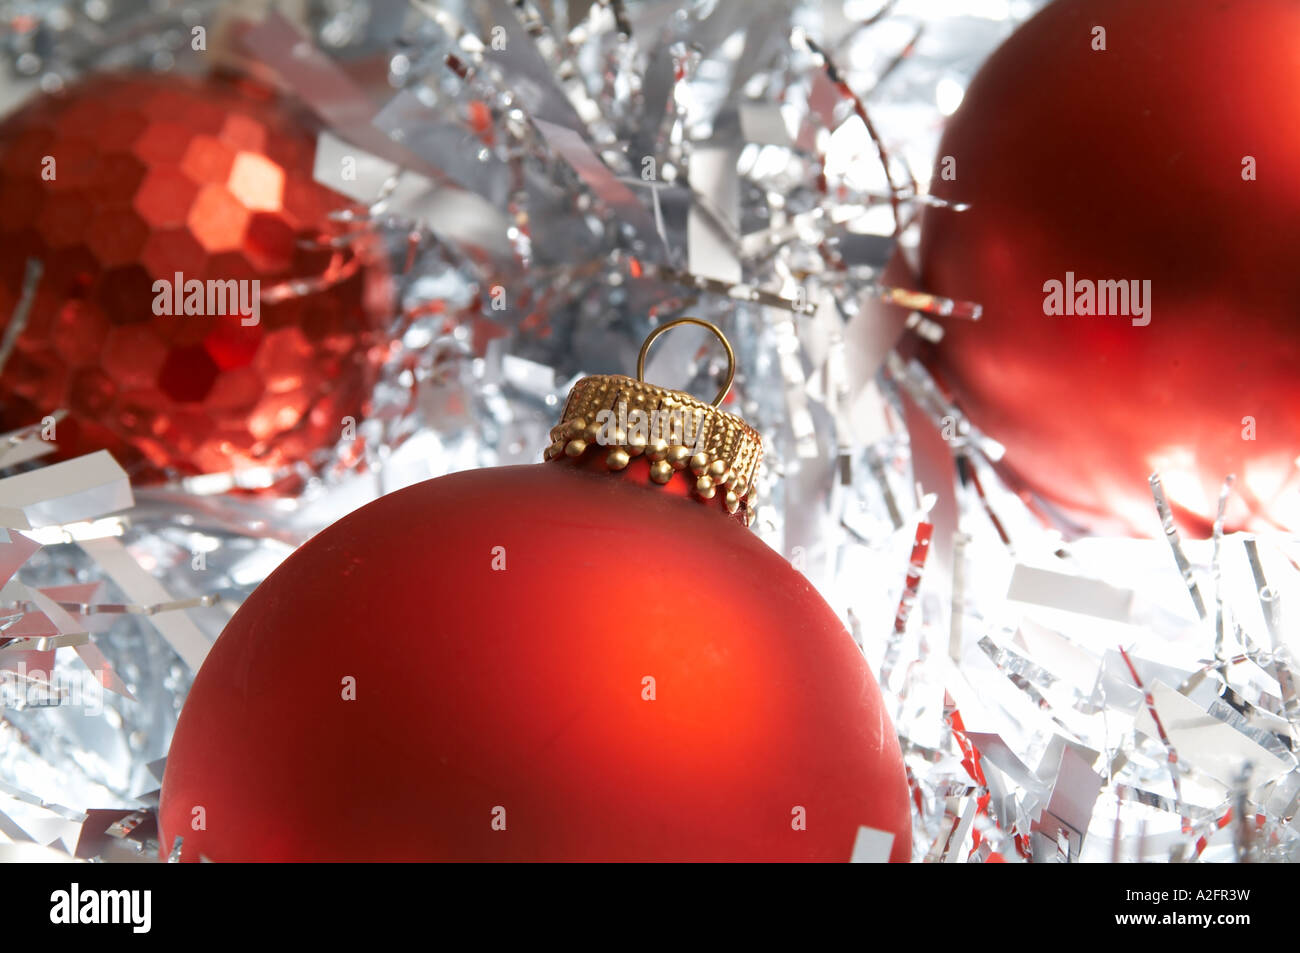 office christmas party decorations. Christmas, Decorations, Borball, Bourbell, Tinsel, Xmas, Tree, Office, Party, Festive, Session, Festivit Office Christmas Party Decorations